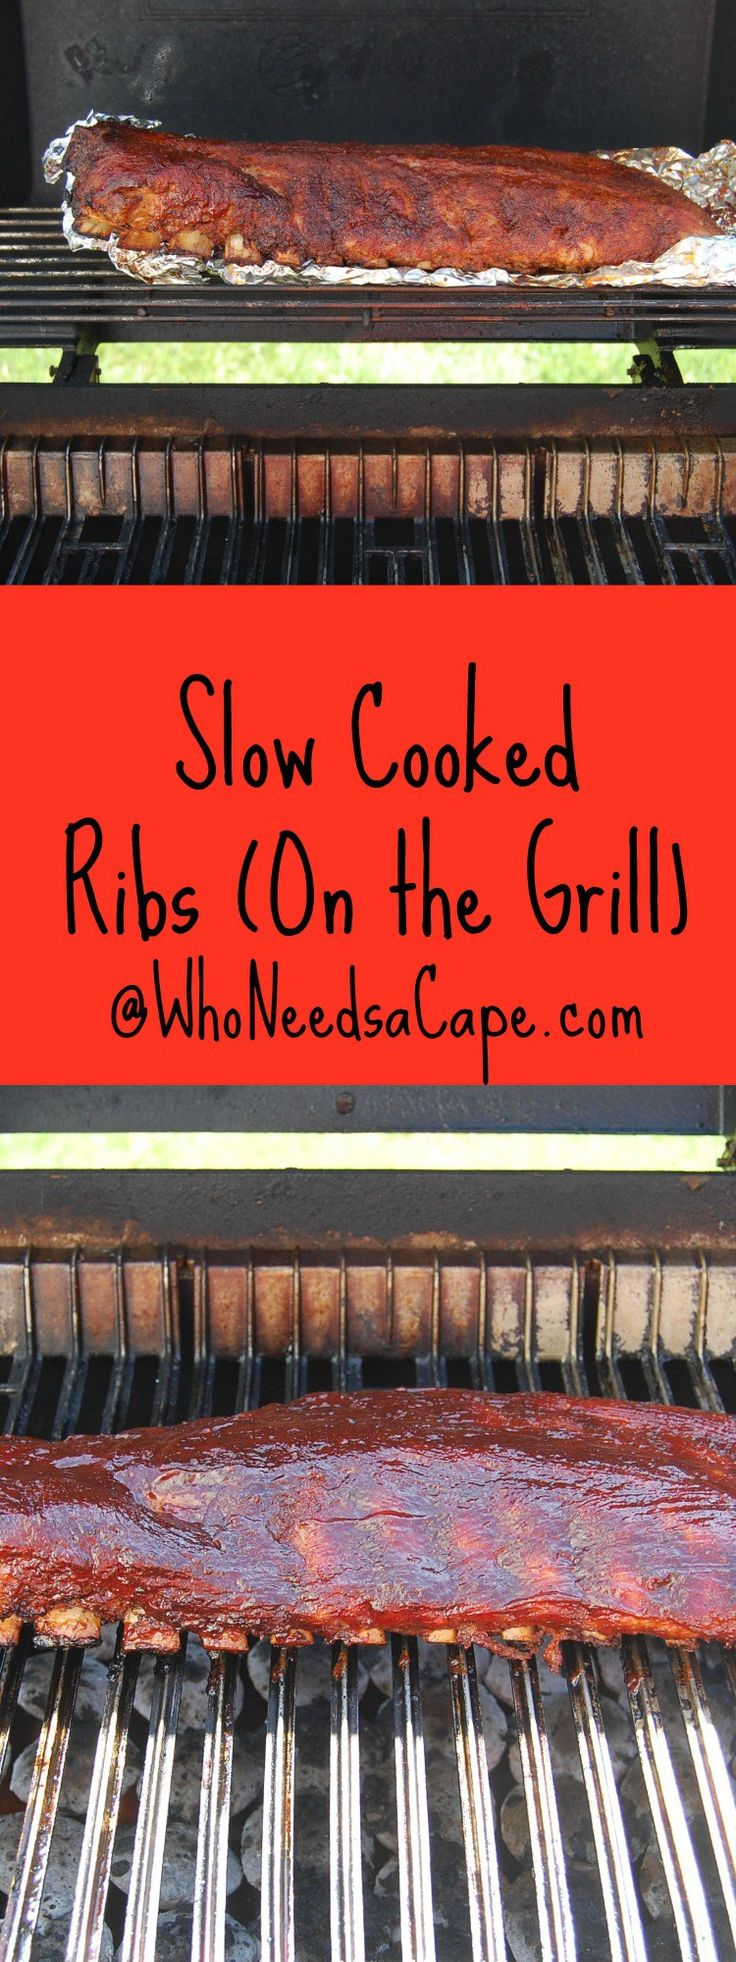 Slow Cooked on the Grill Ribs are the best around! Make them for any summer dinner and enjoy the flavor! You're going to want to make them again!